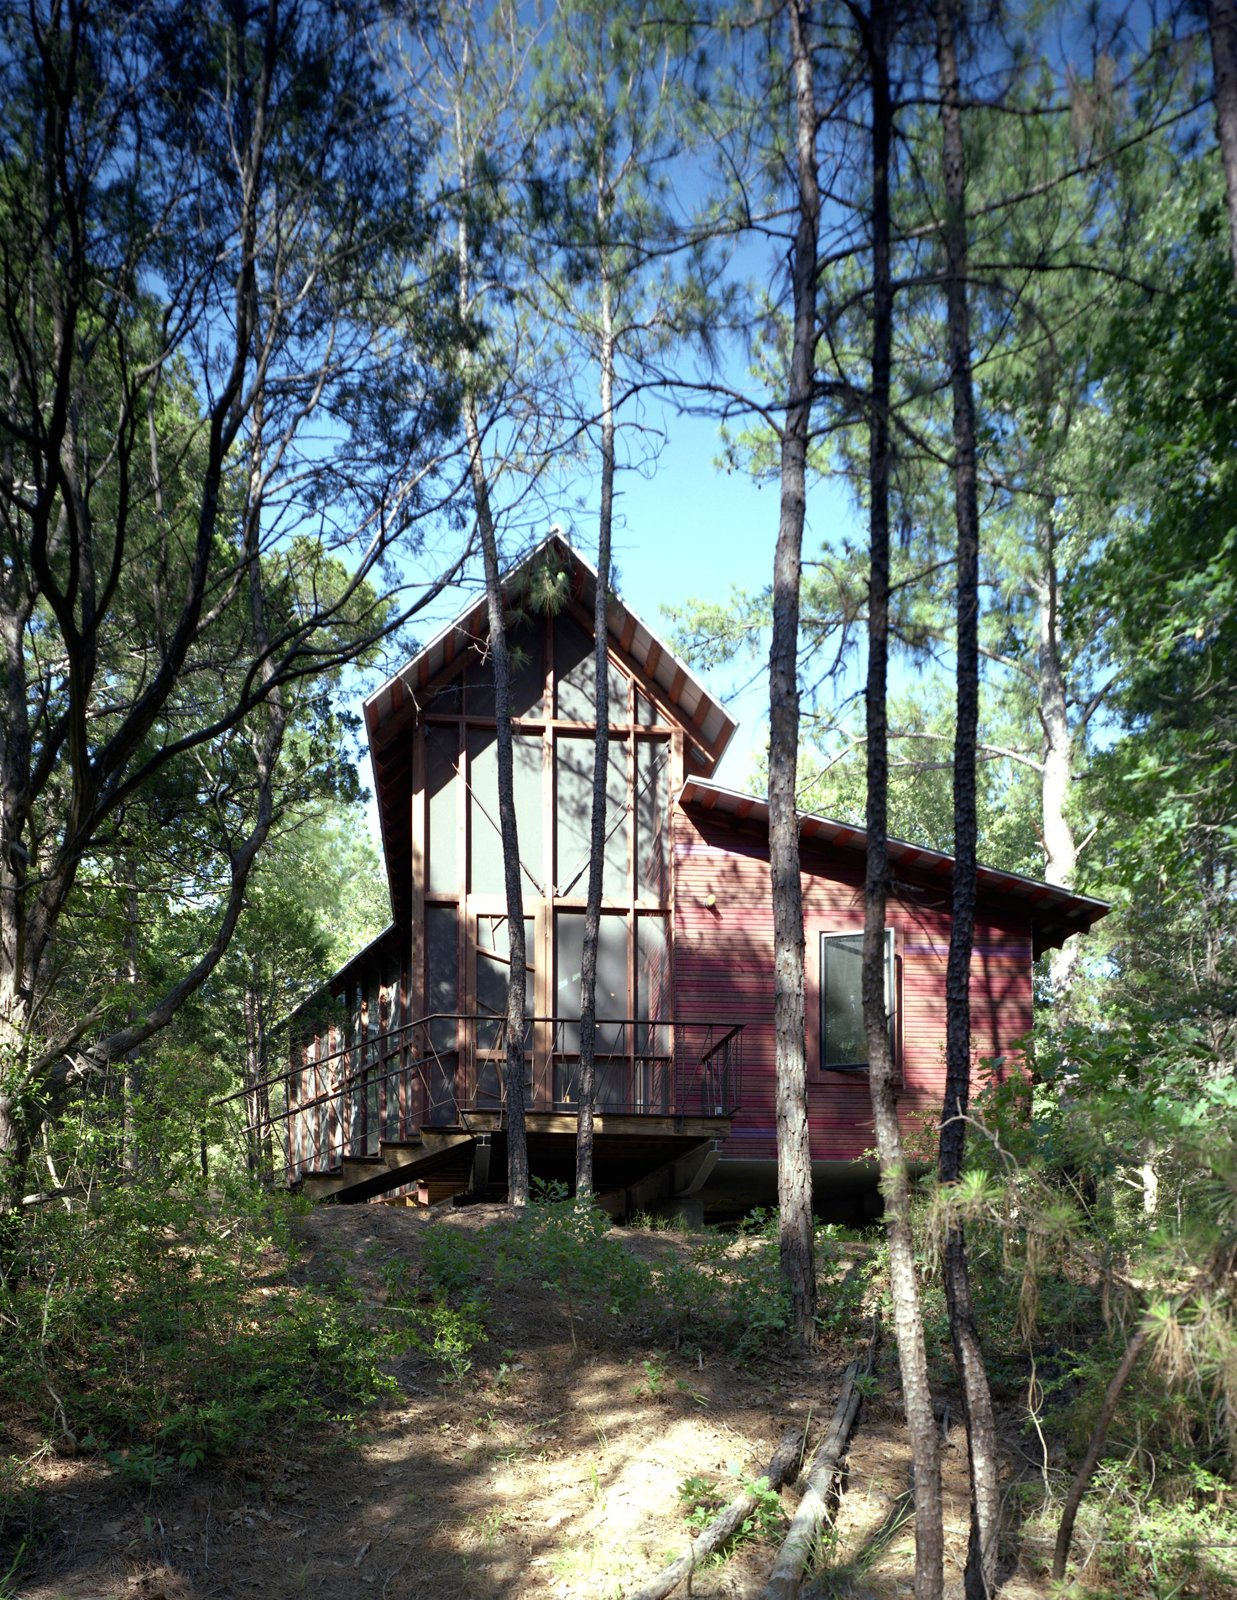 The opposite side of the bunkhouse, with the only enclosed bedroom, which leads to a small galley kitchen and two bathrooms, at right. This exit leads to a path to a nearby footbridge, swimming pool and outdoor bathhouse.  Texas Bunkhouse by Erika Heet